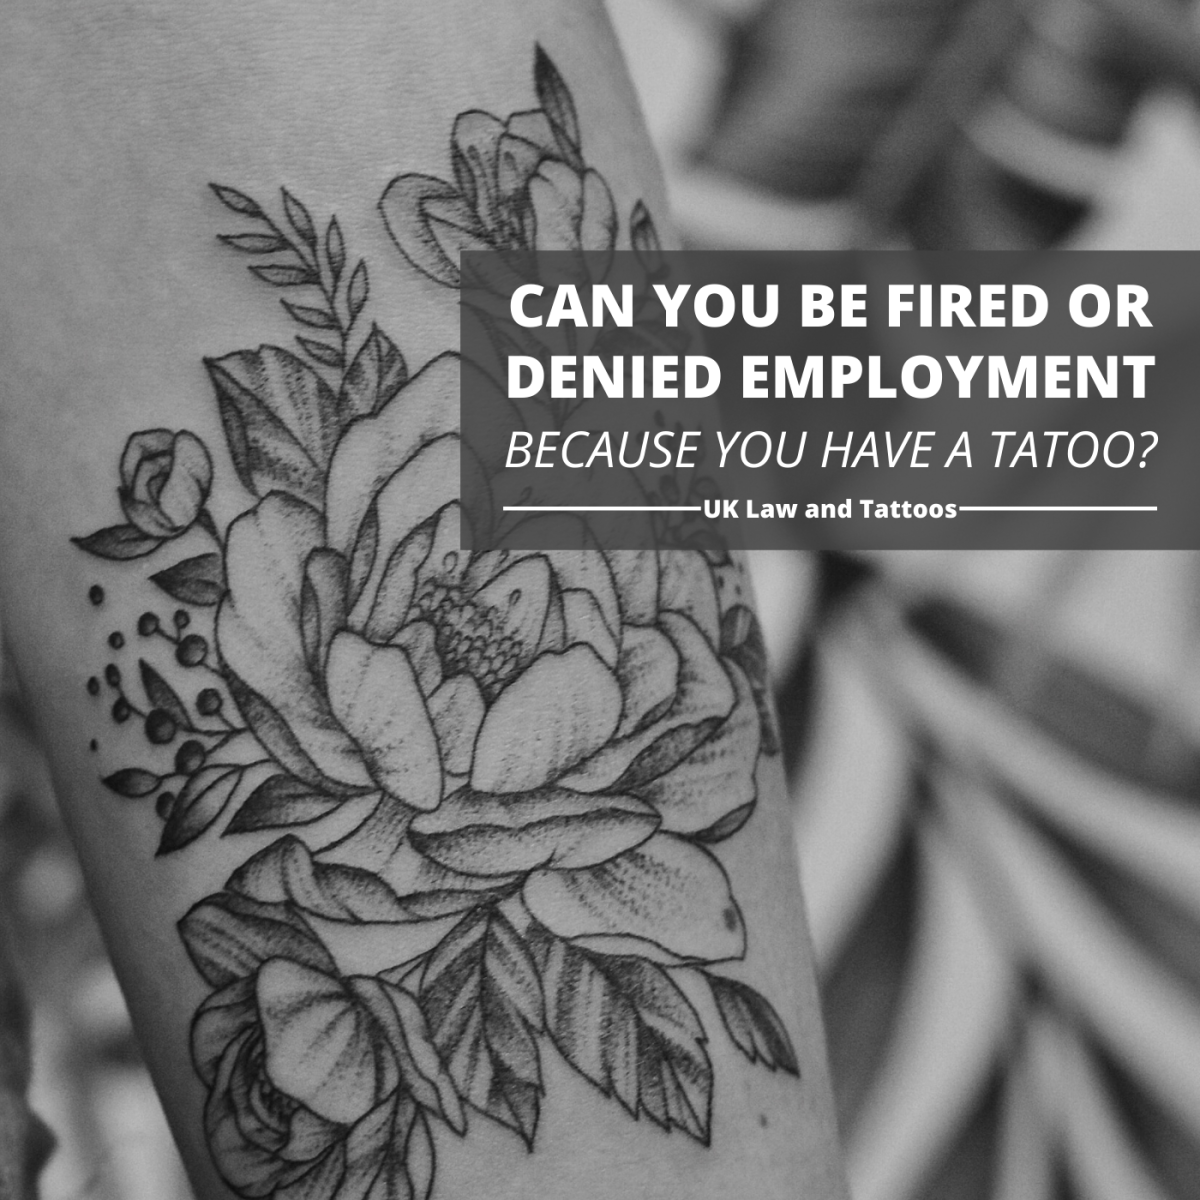 What does UK law say about employee rights when it comes to tattoos?